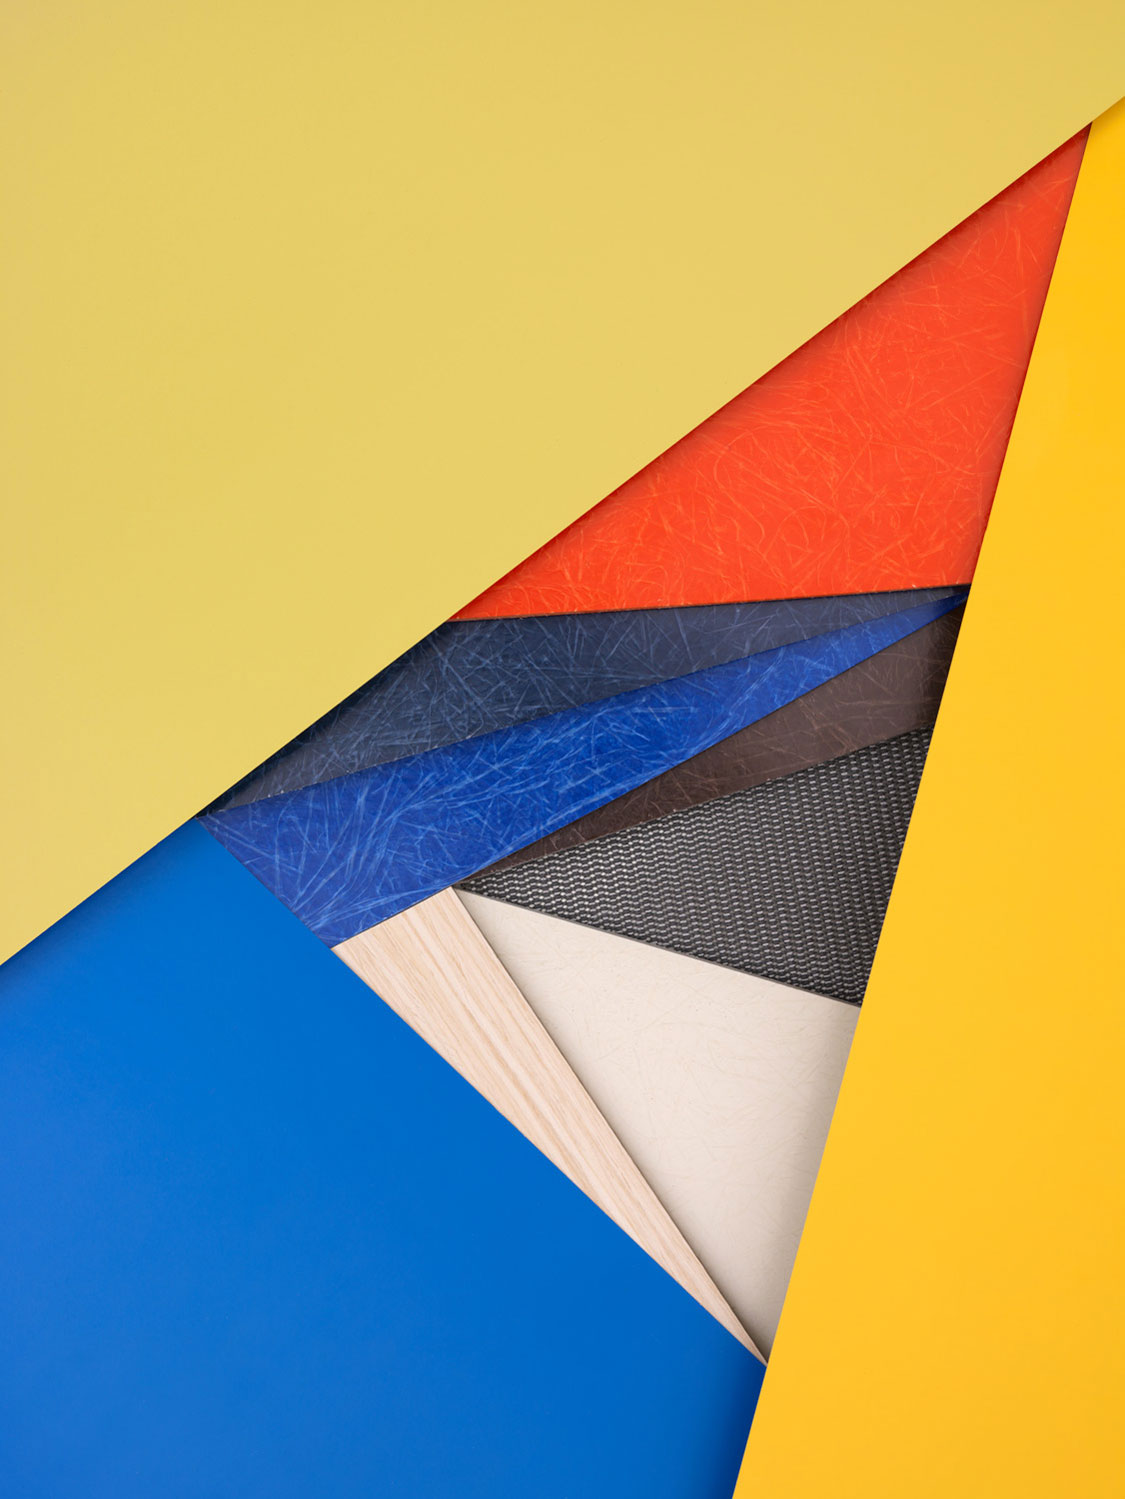 Herman Miller's Refreshed Palette by Carl Kleiner red blue yellow| Yellowtrace